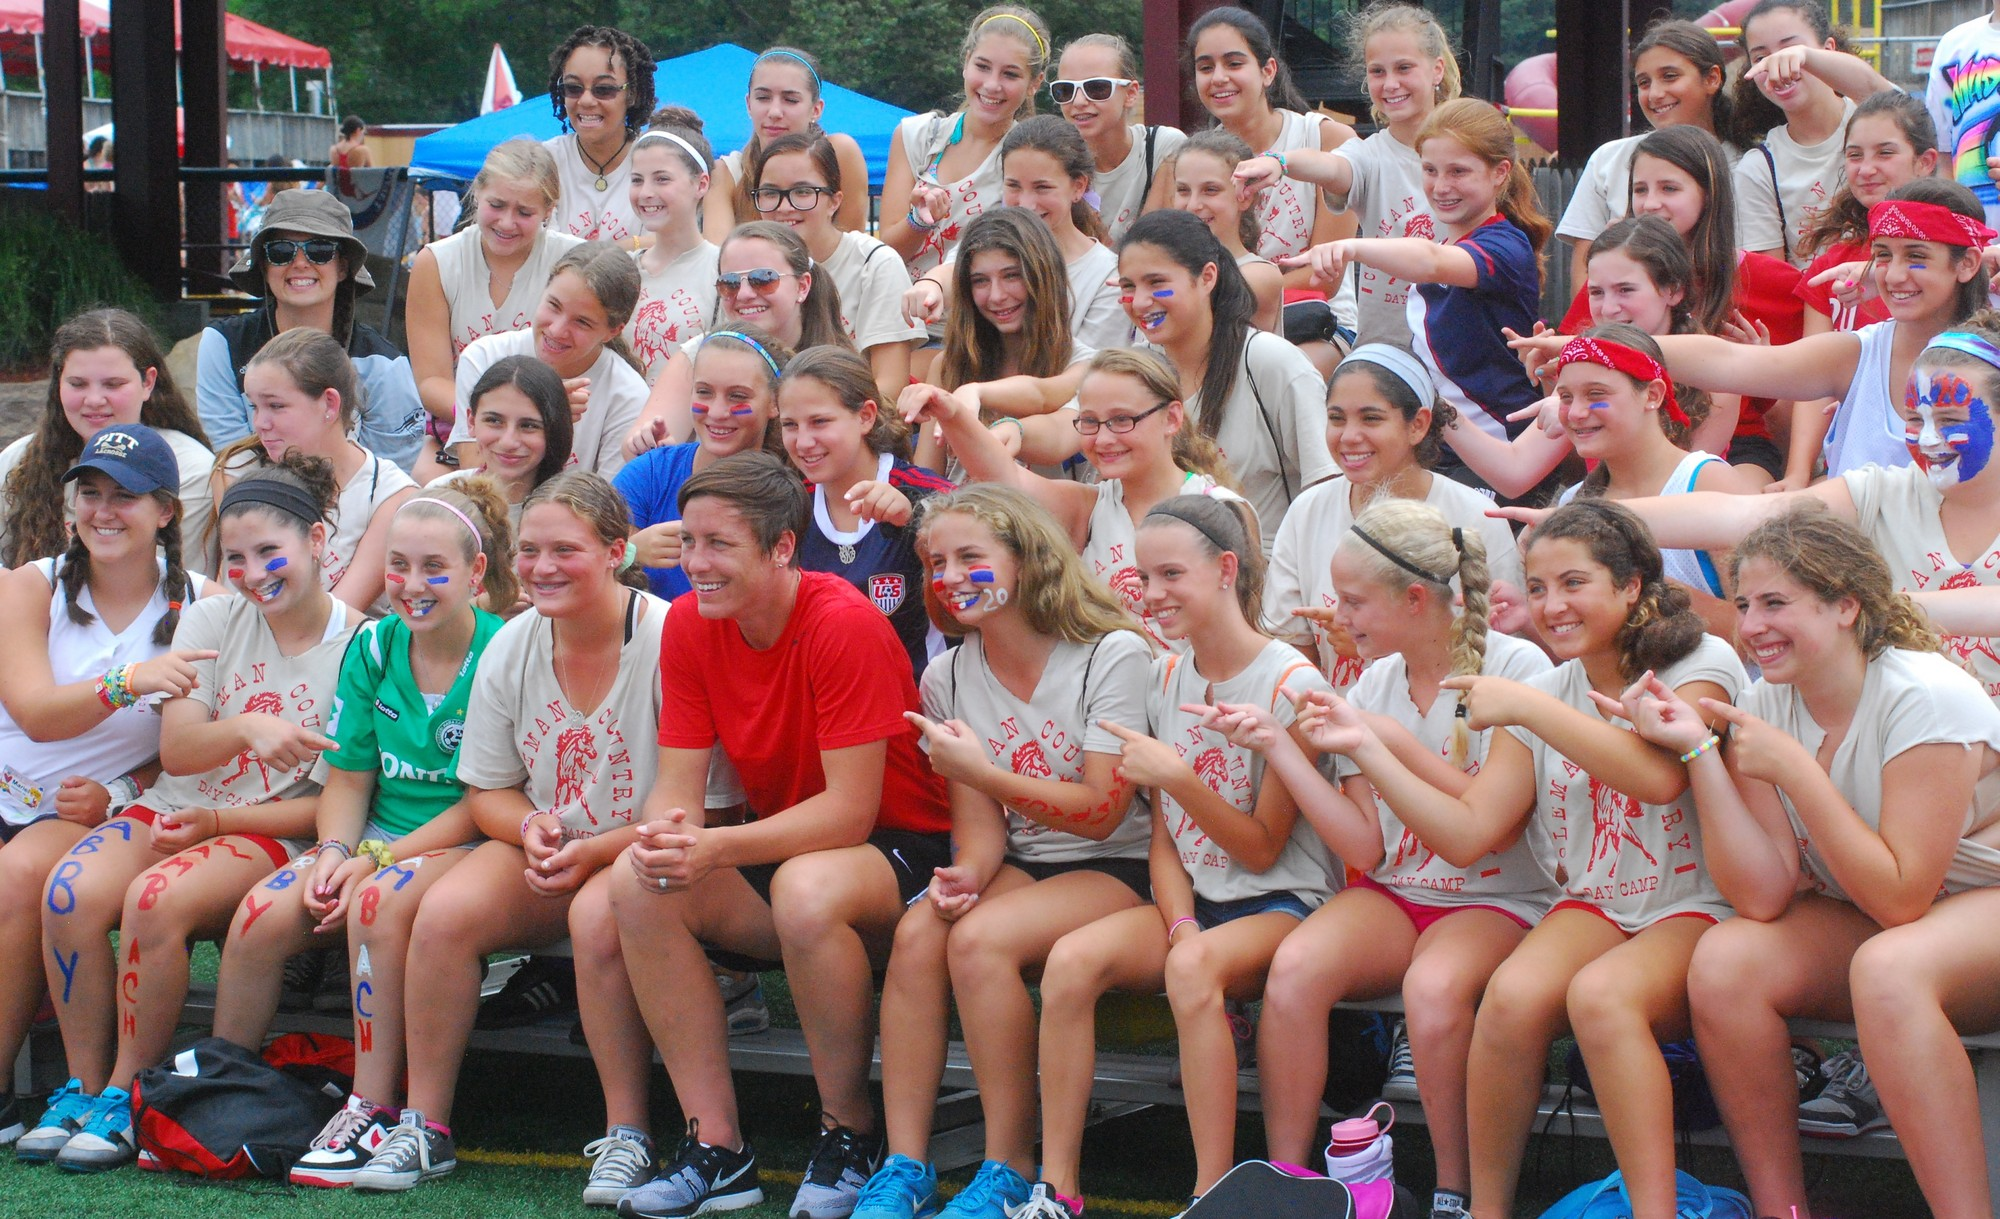 Wambach posed for group photos with campers.